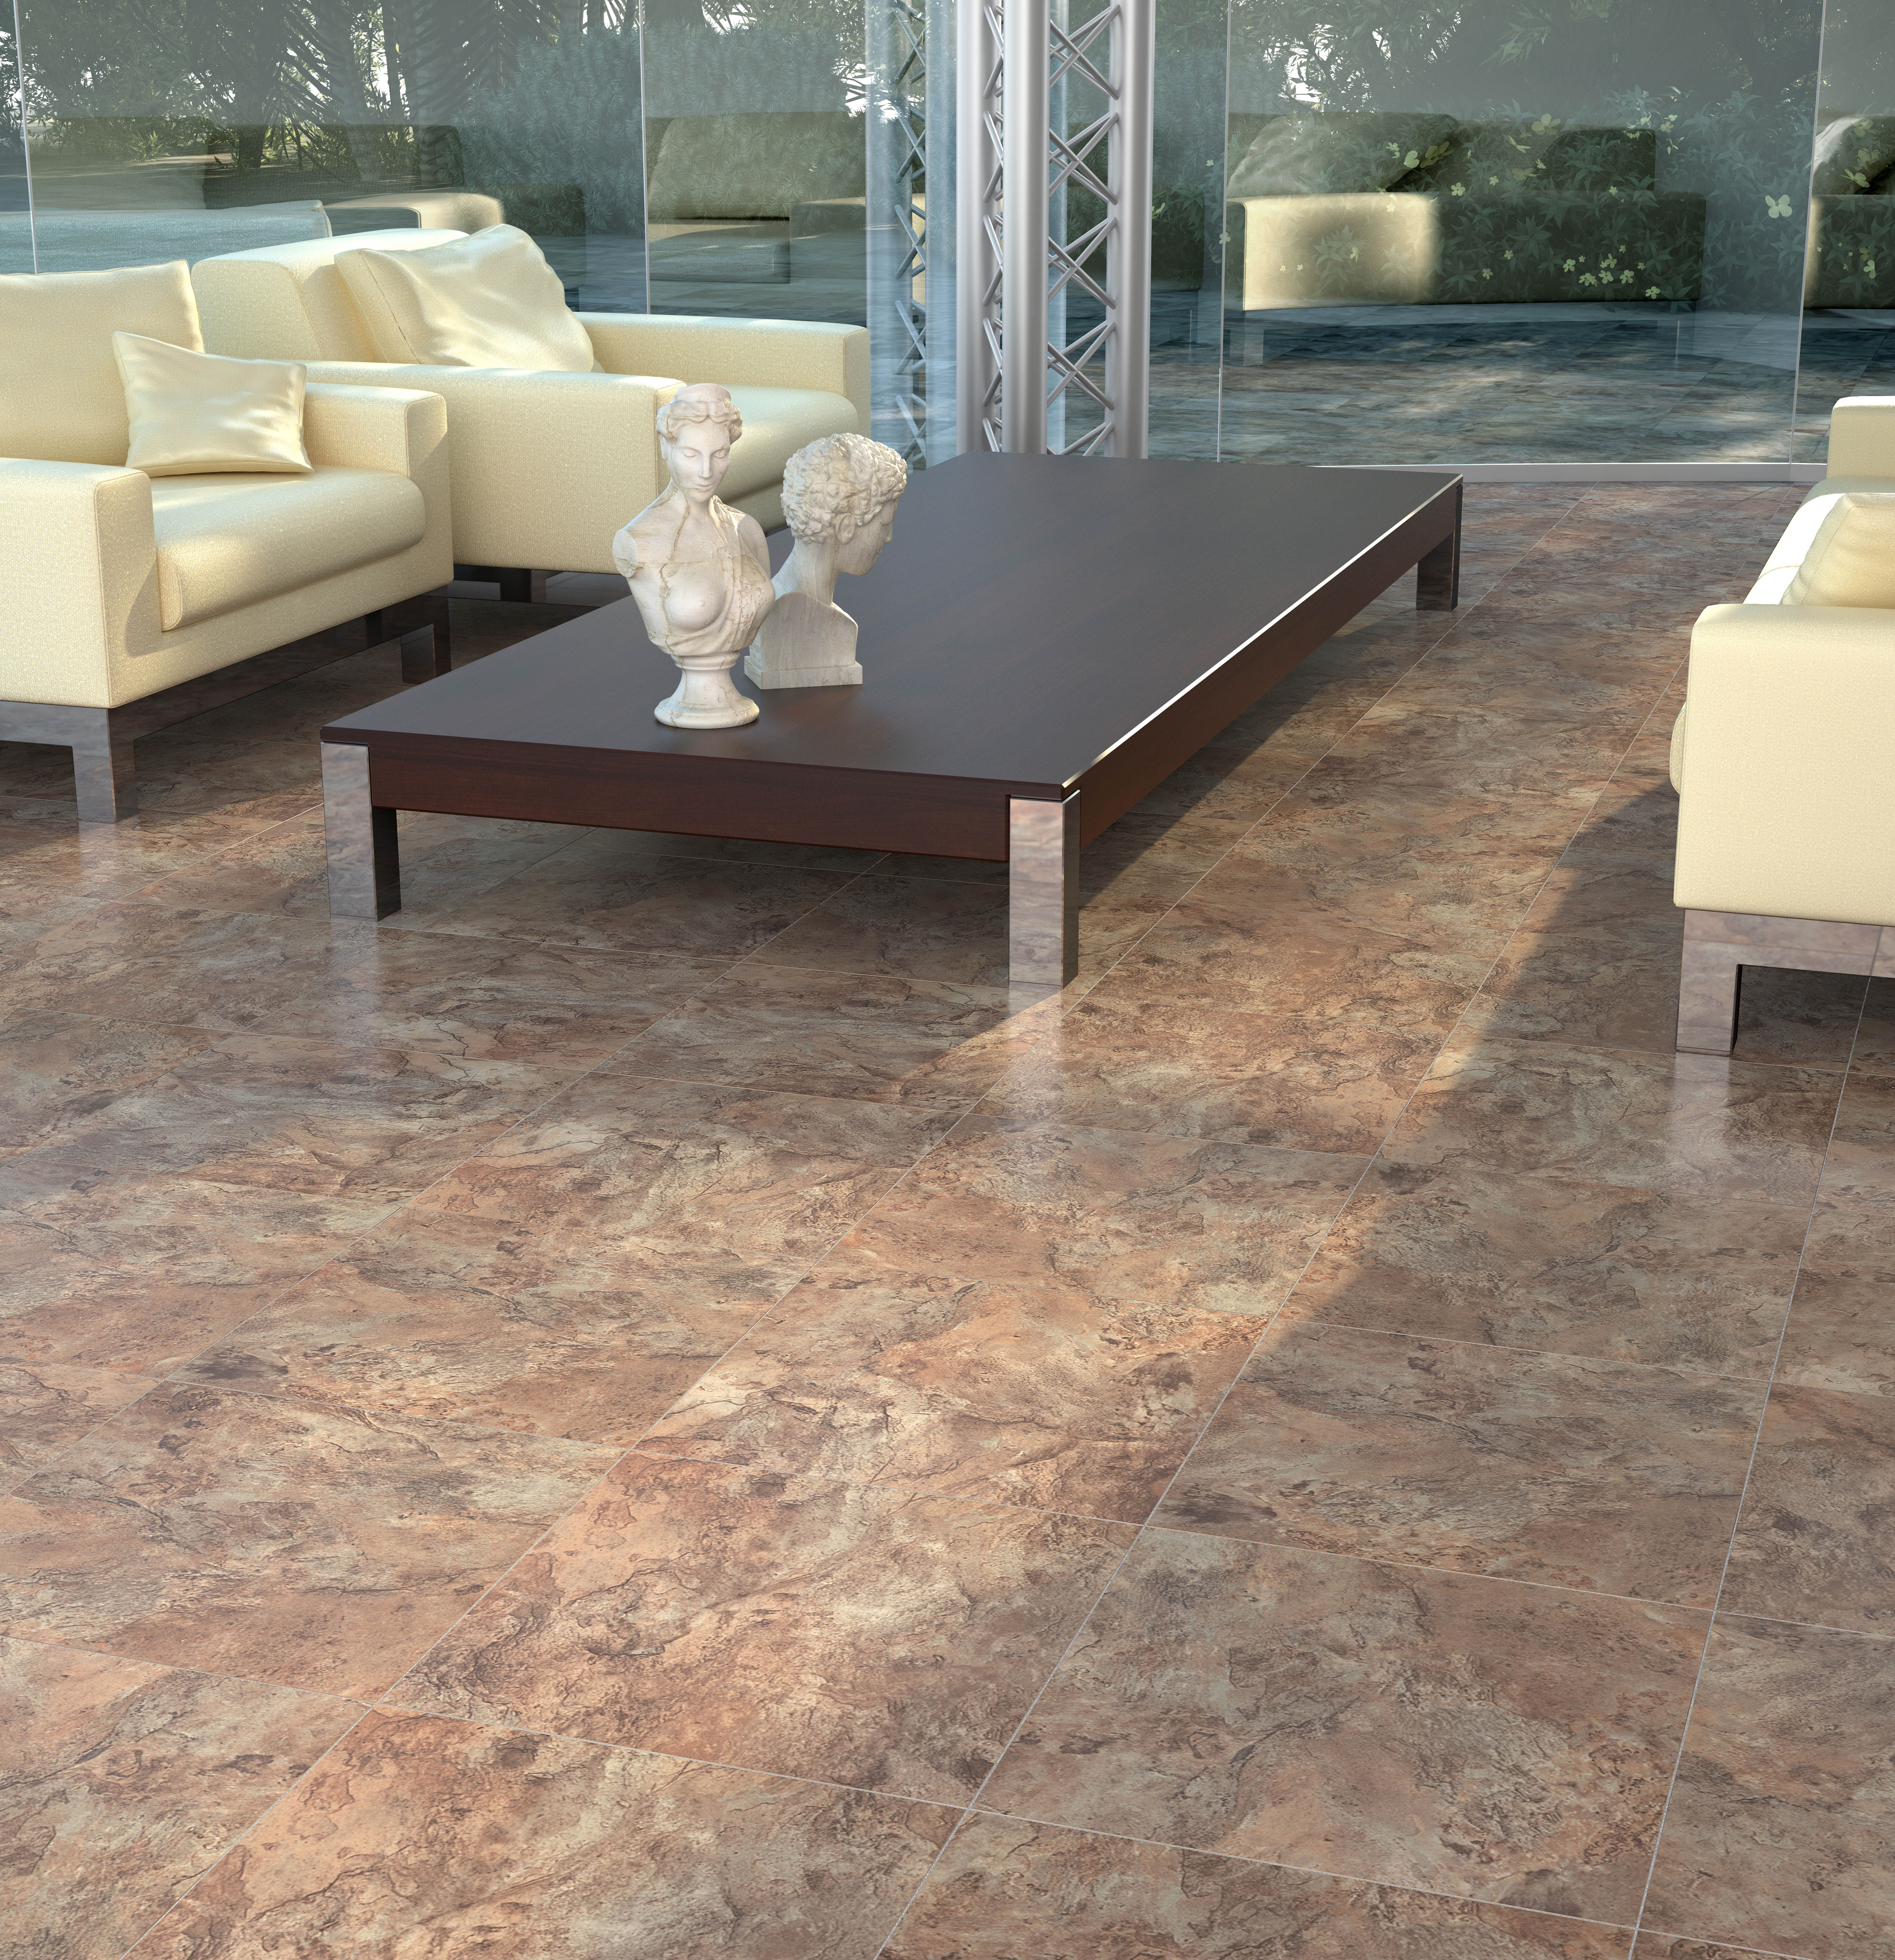 OUTDOOR CANYON_ESPRESSO   Tile A Floor To Use For Exterior Environments  With Roofing